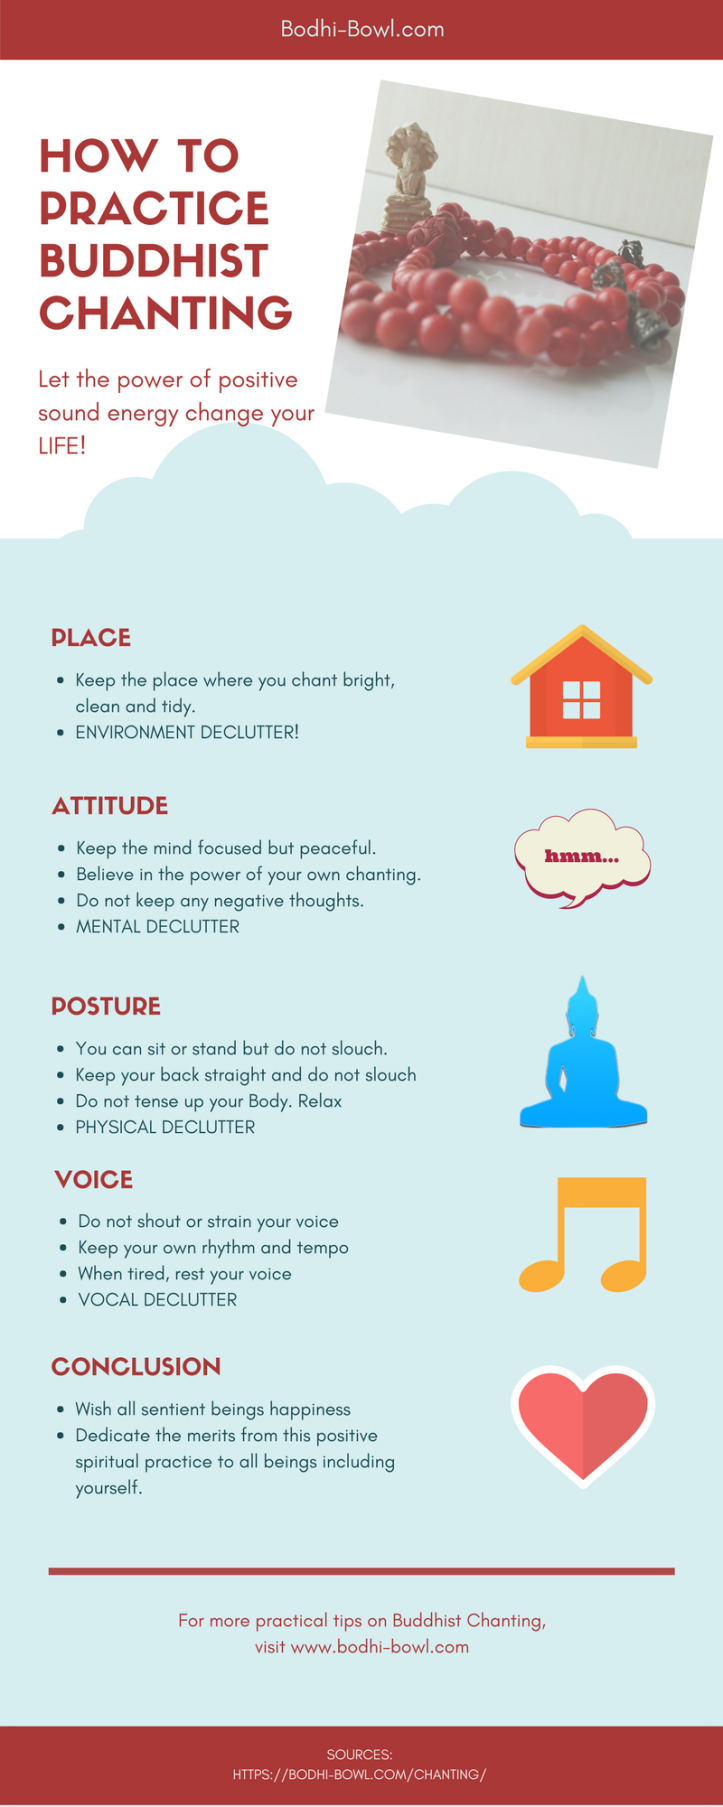 How to Practice Buddhist Chanting